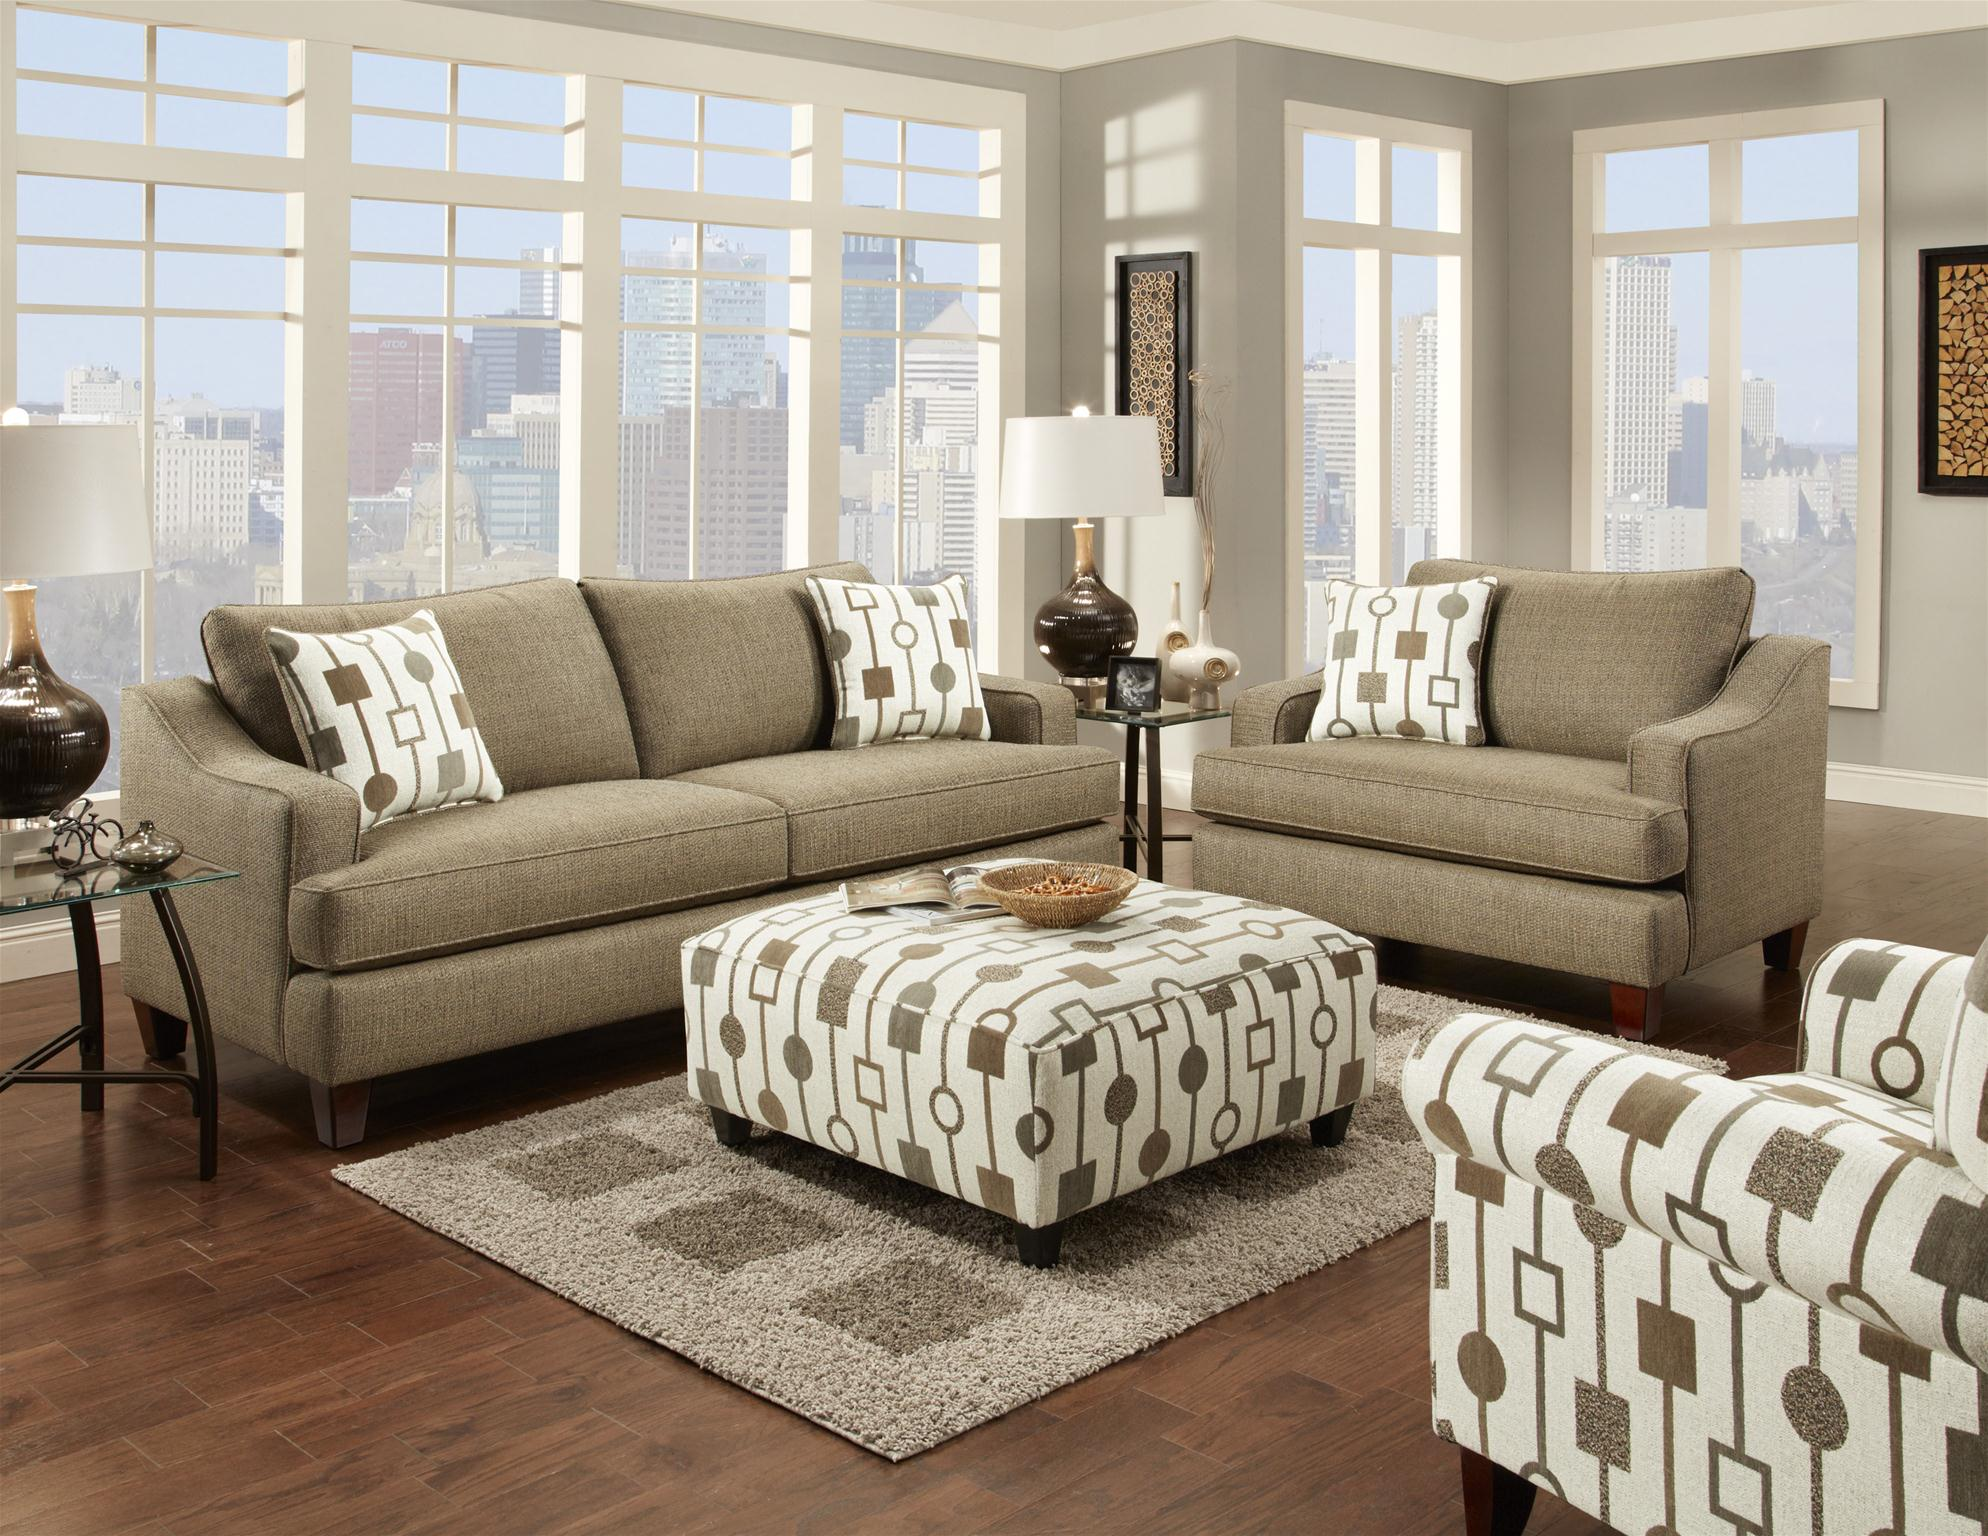 Oversized Living Room Chair Sofa And Chair And A Half Oversized Accent Chairs Living